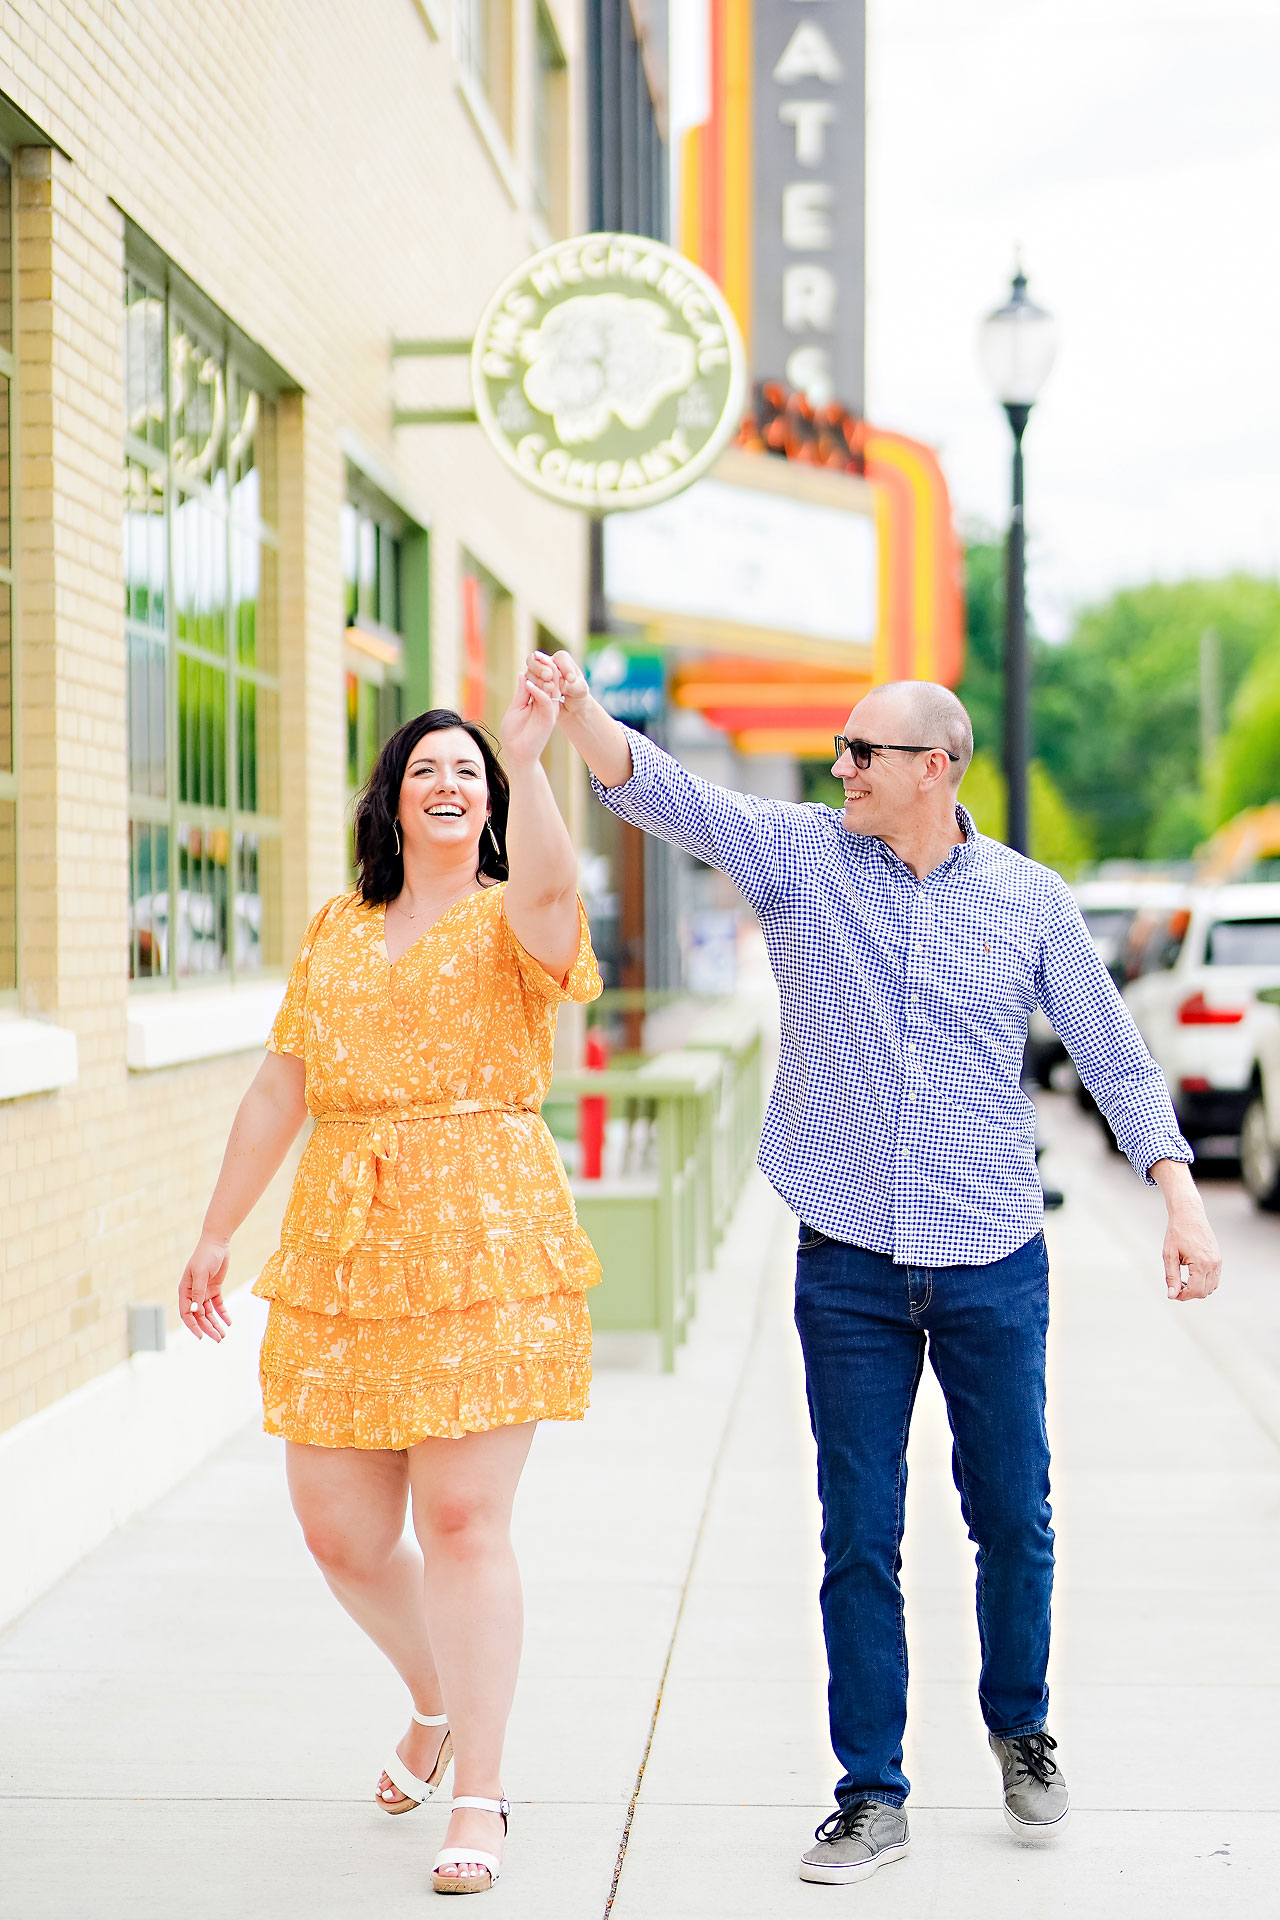 Katie Chuck Bottleworks Canal Indianapolis Engagement Session 001